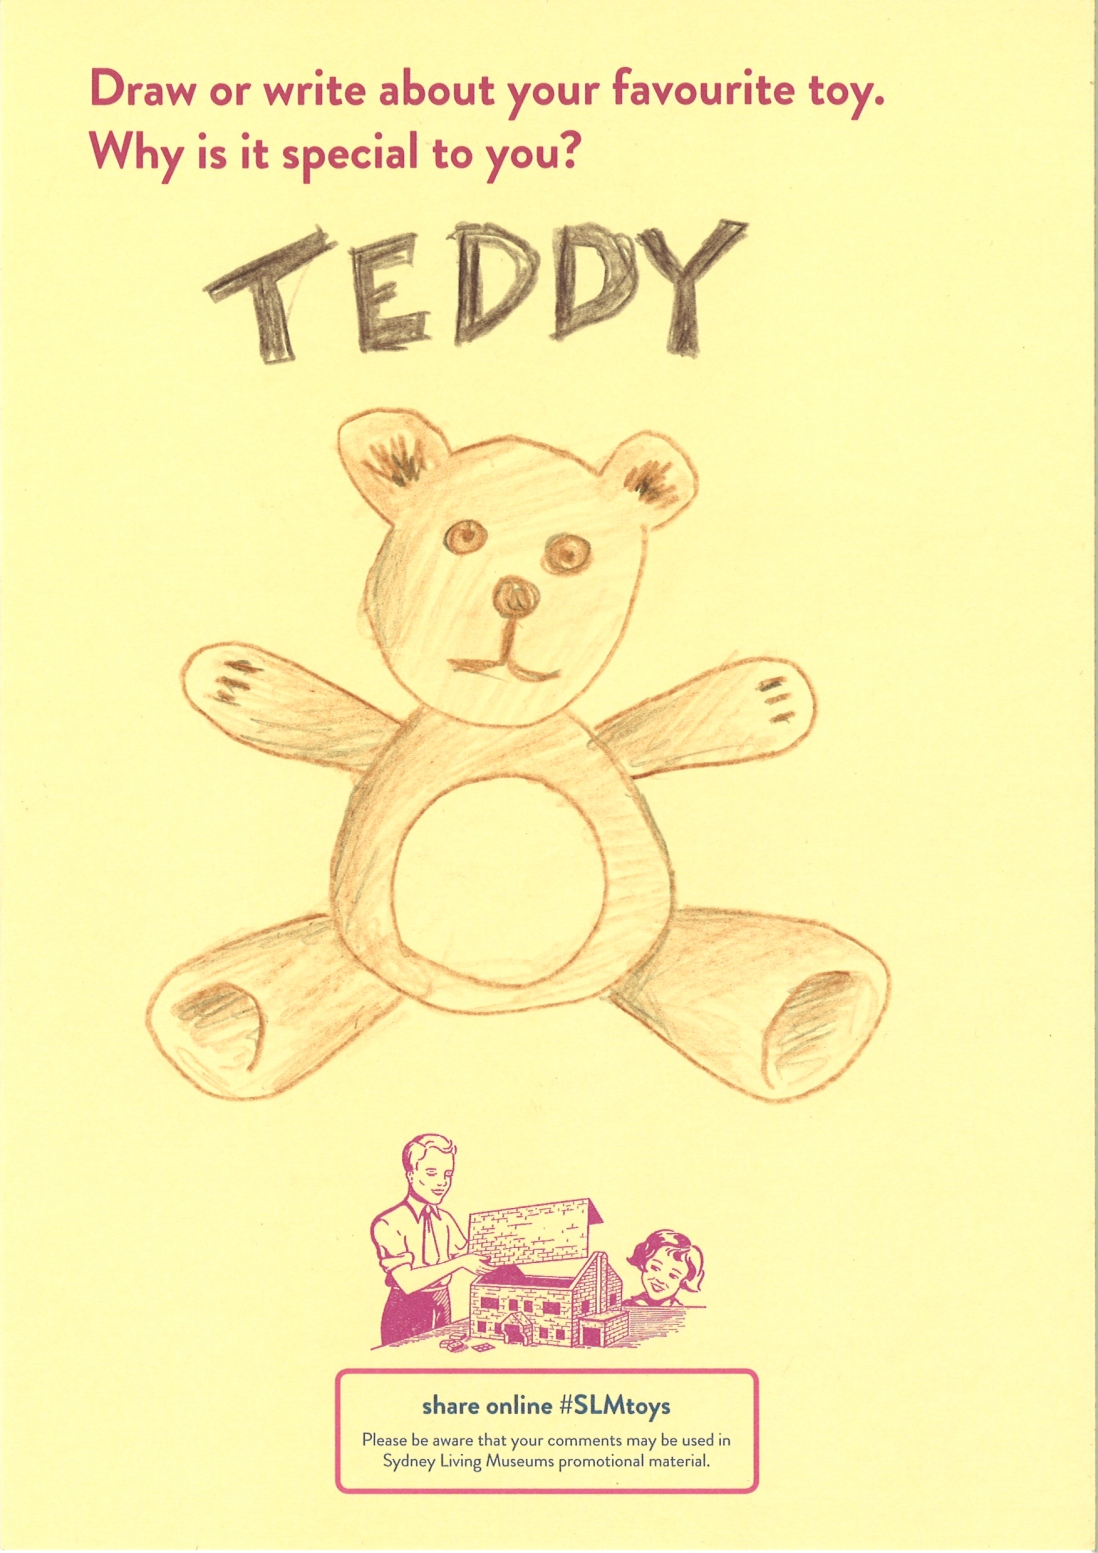 A drawing of a brown teddy bear